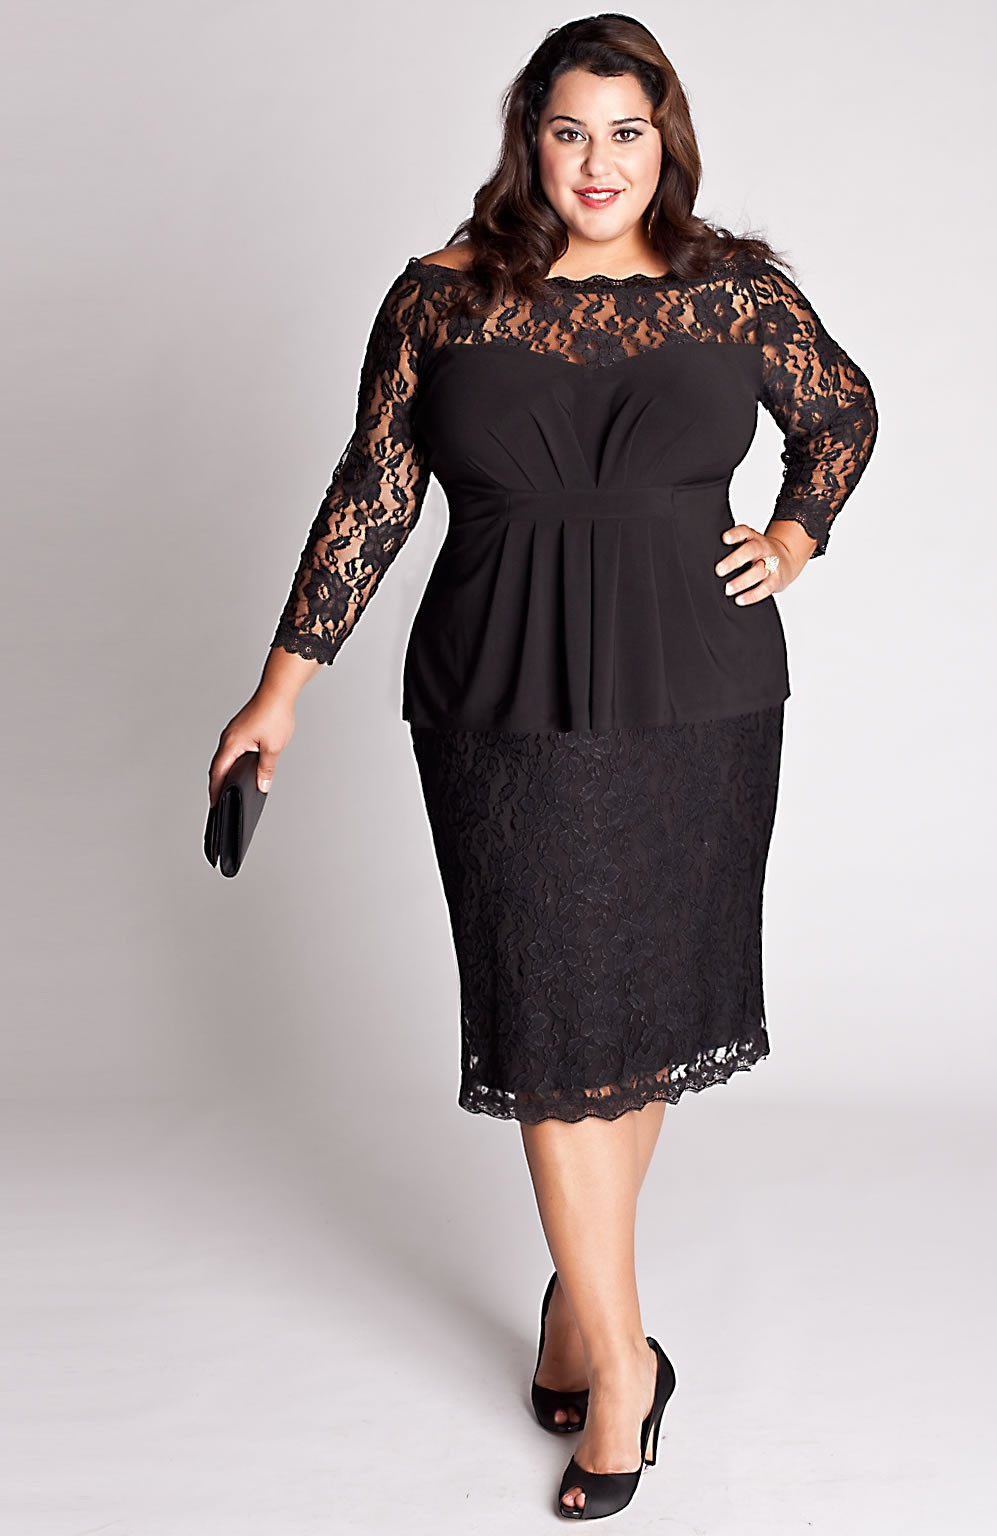 Fashion-tips-for-plus-size-women-20151